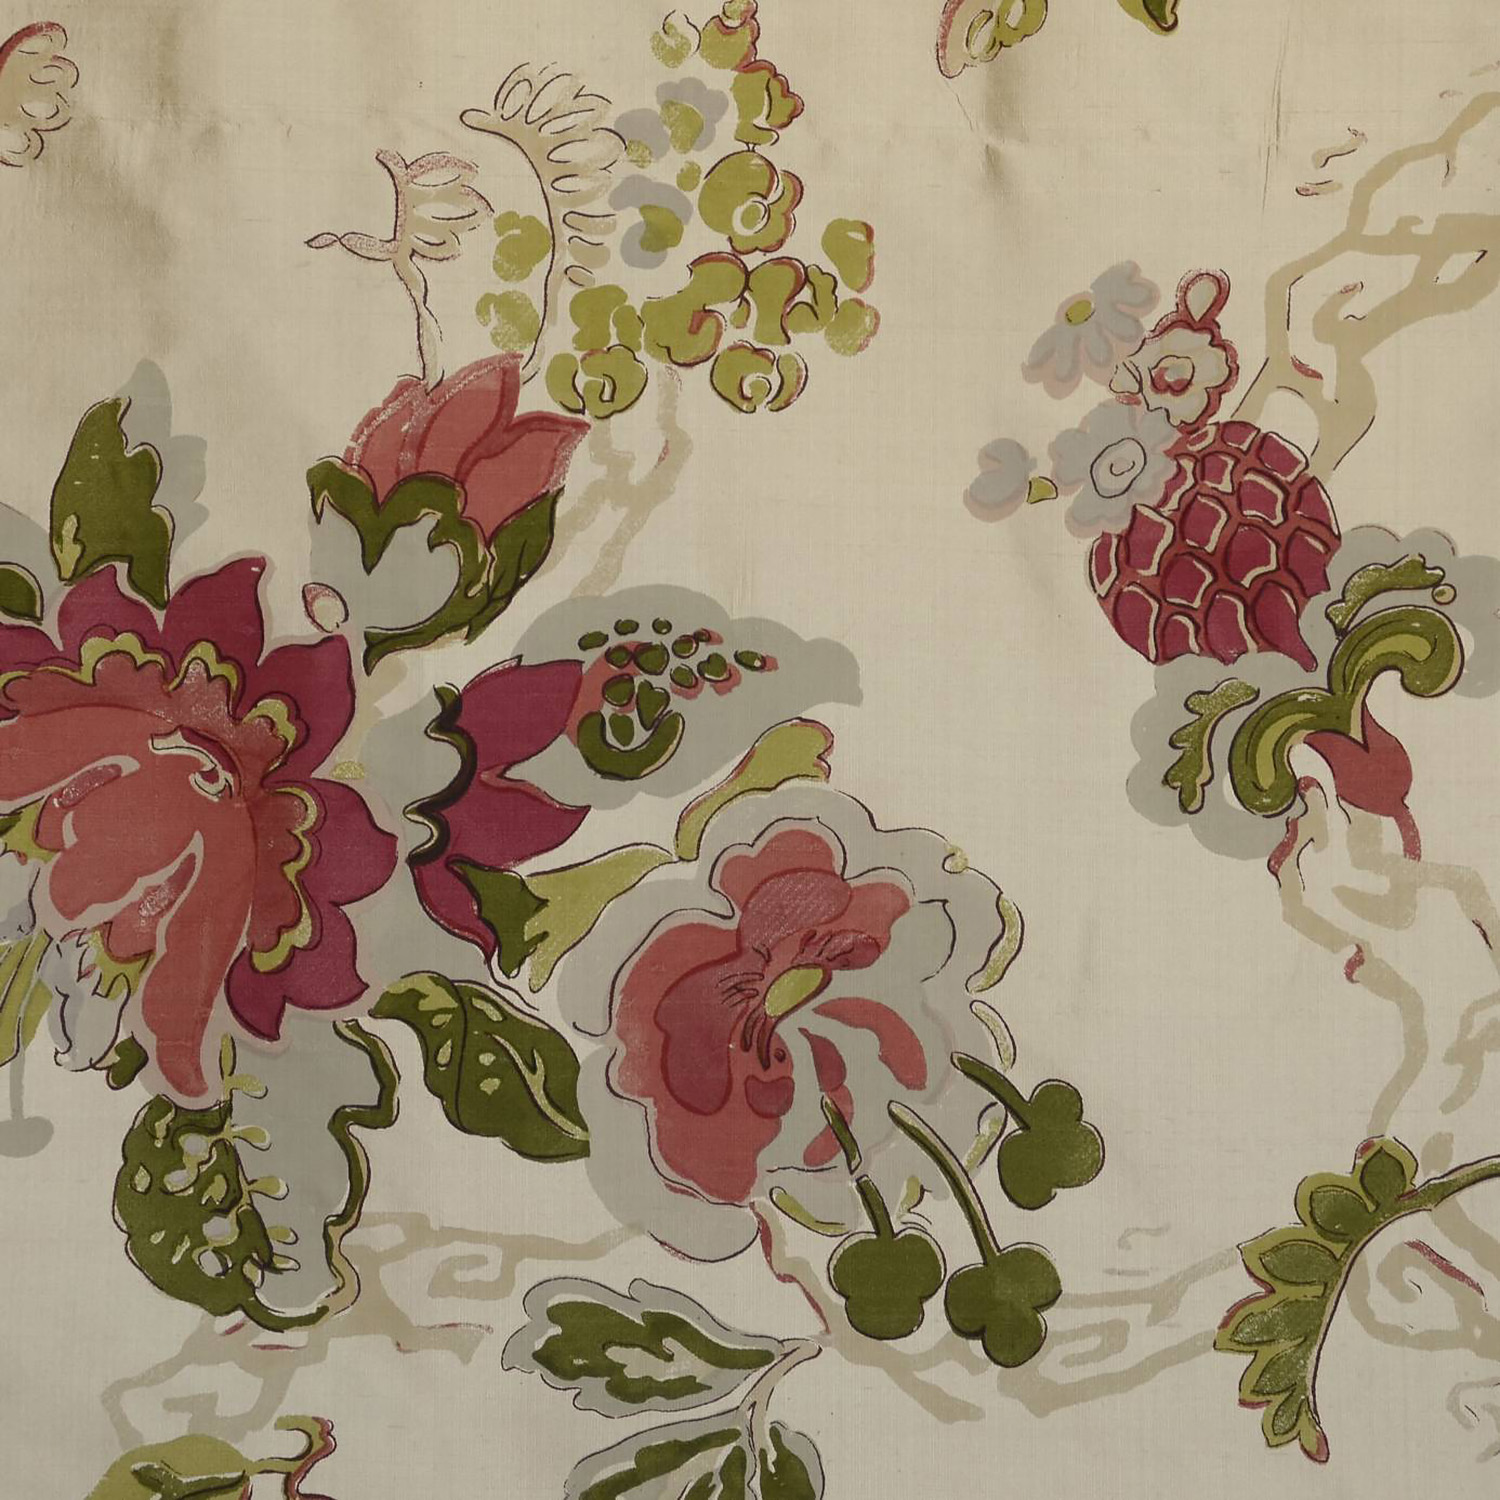 <p><strong>PARNHAM SILK</strong>coral/olive/oyster 5600-06<a href=/collection-2/parnham-silk-coral-olive-oyster-5600-06>More →</a></p>